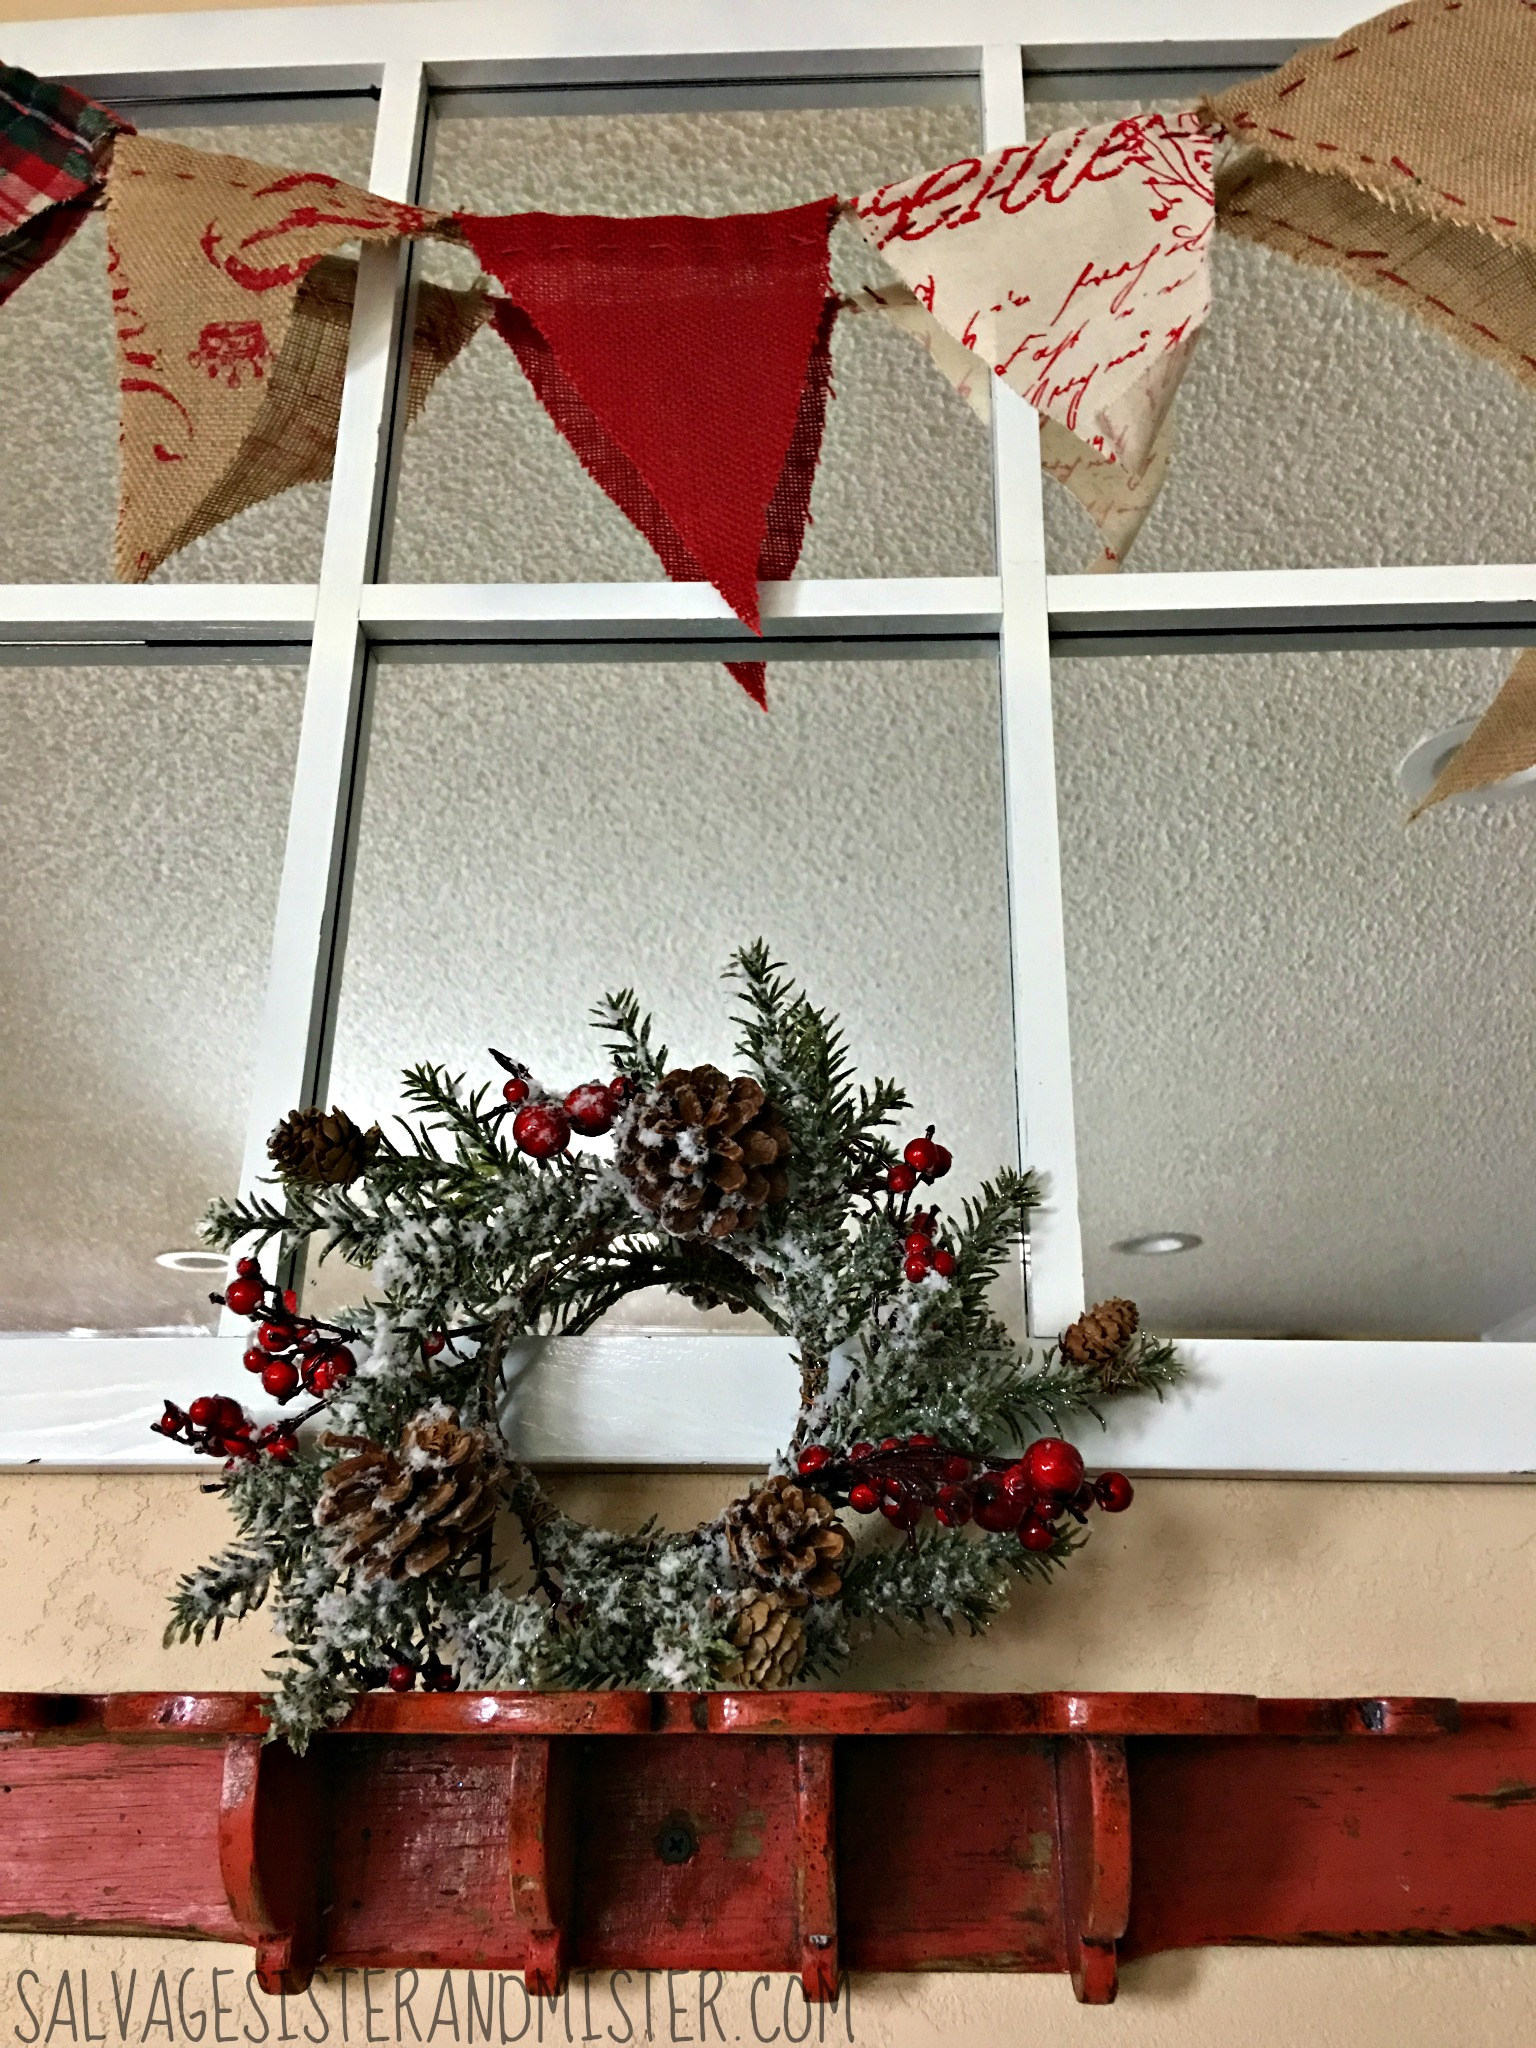 salvaged christmas home tour. Simple touches like a banner and wreath make for easy holiday decor